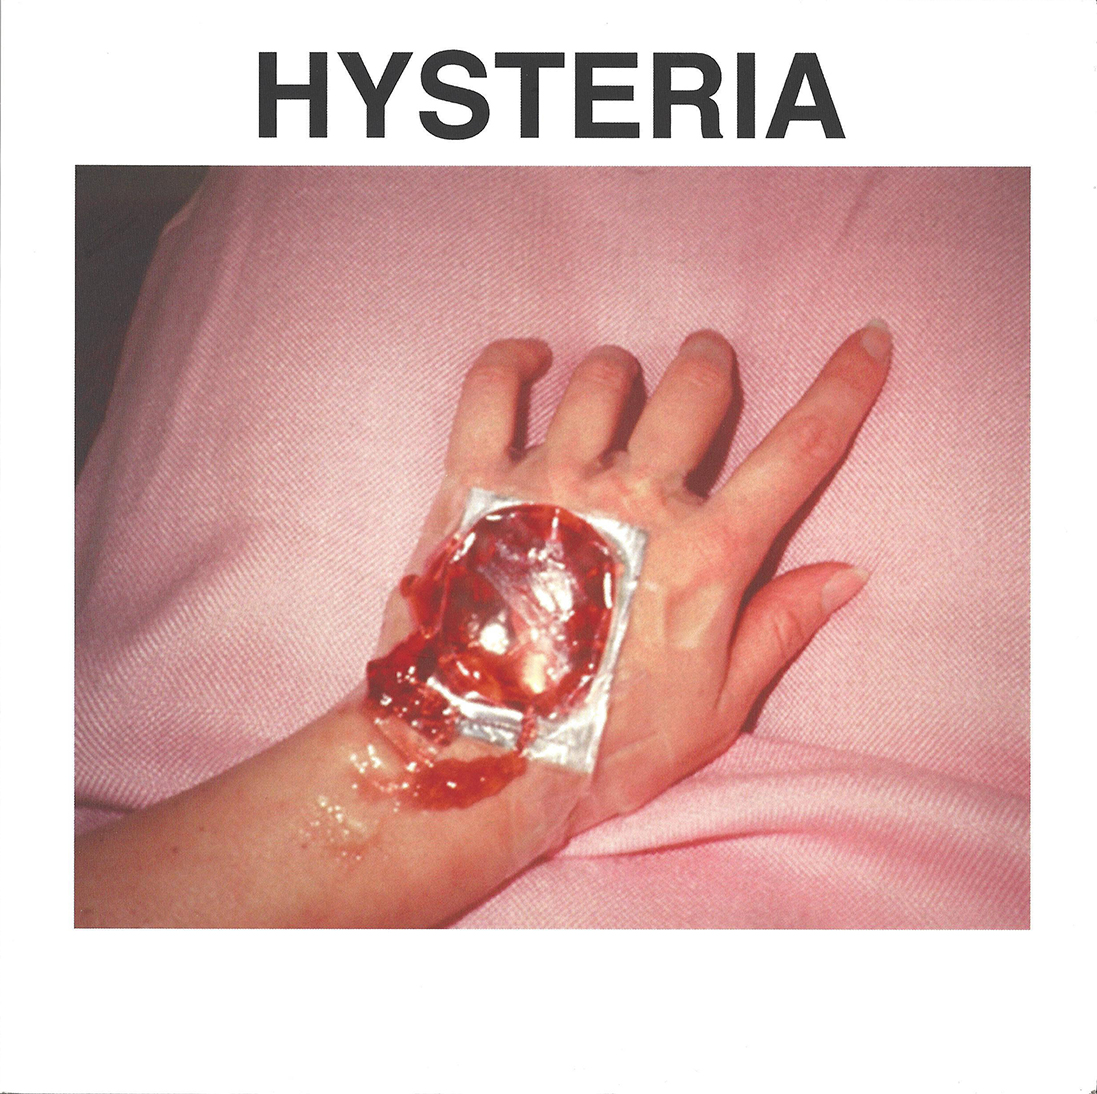 Hysteria, Issue 6